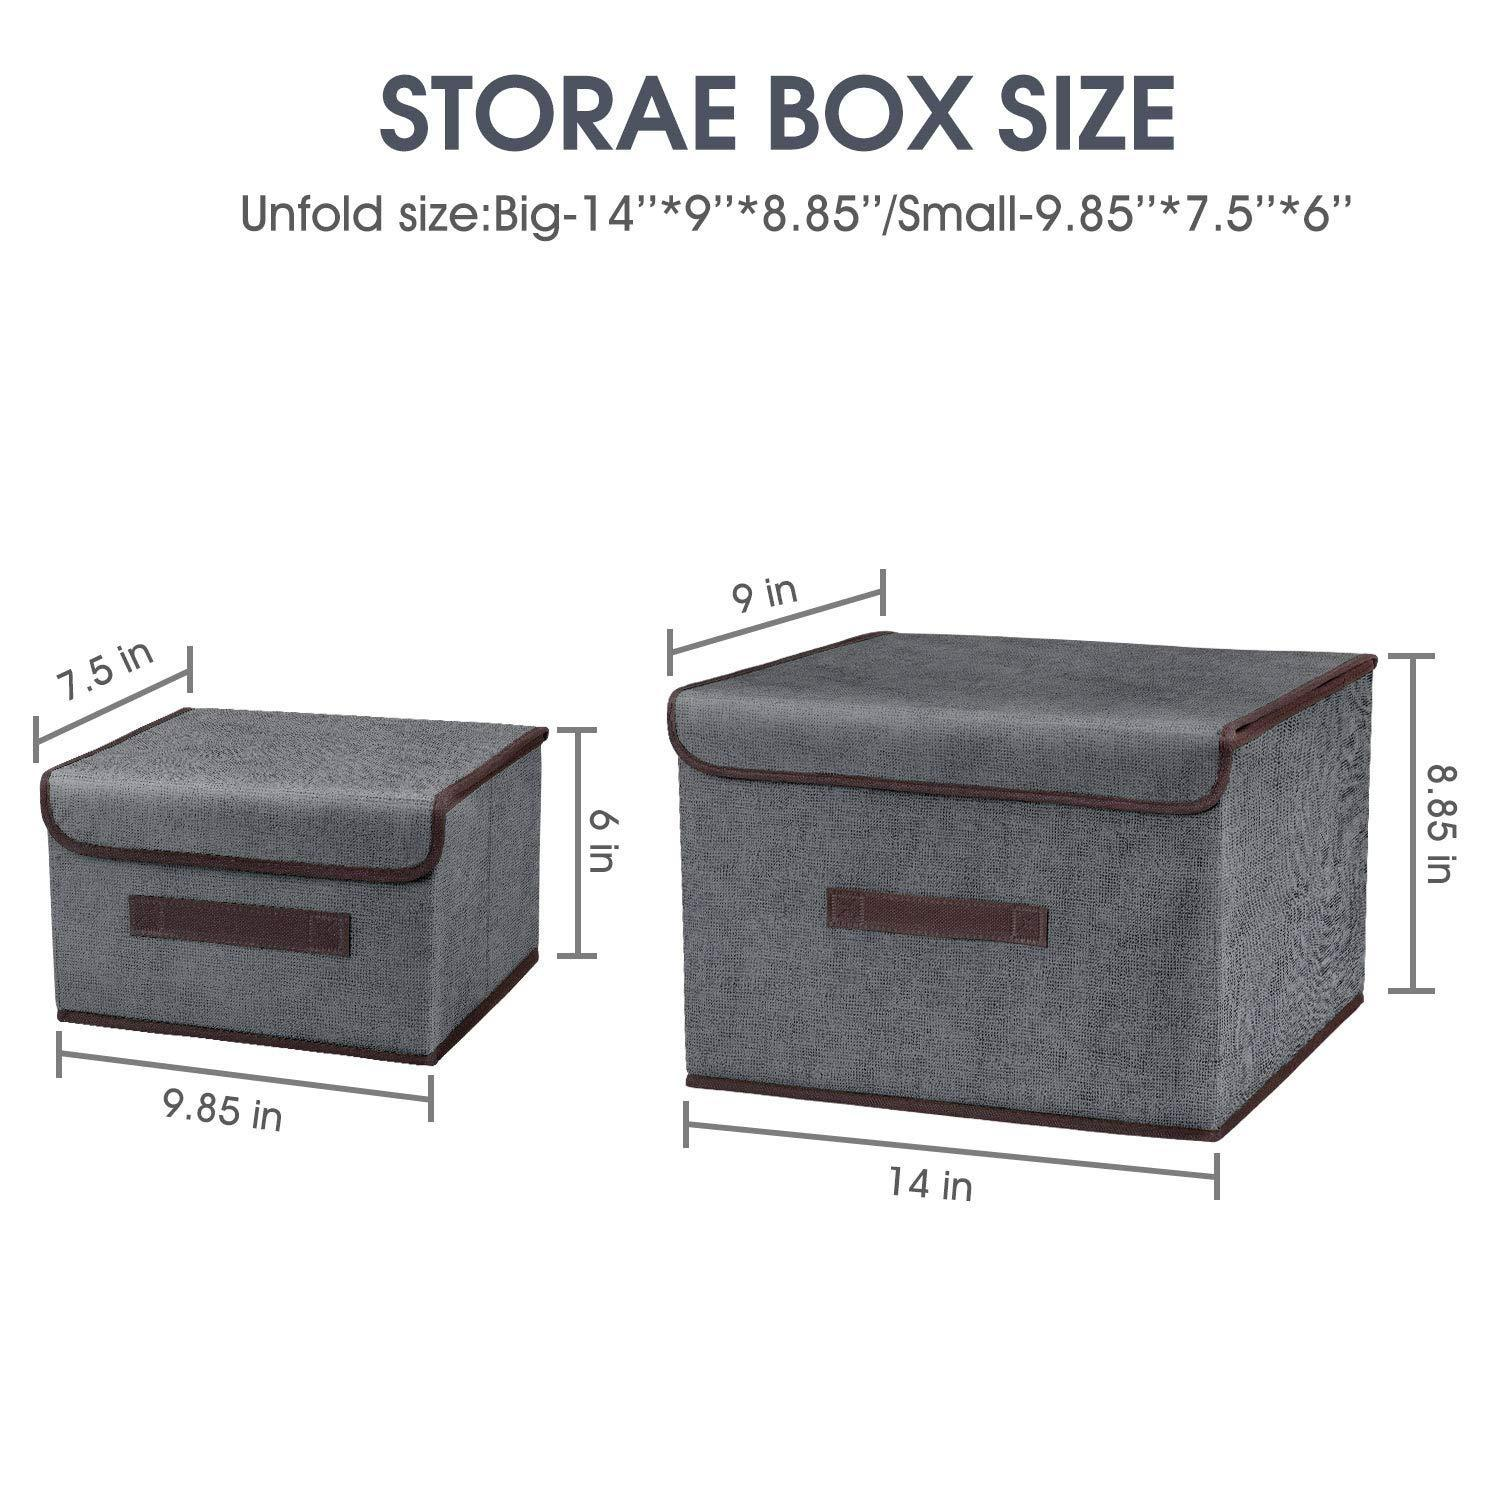 Kitchen foldable storage boxes with lids 2 set of linen fabric cubes with handles for shelf closet book kid toy nursery organize grey